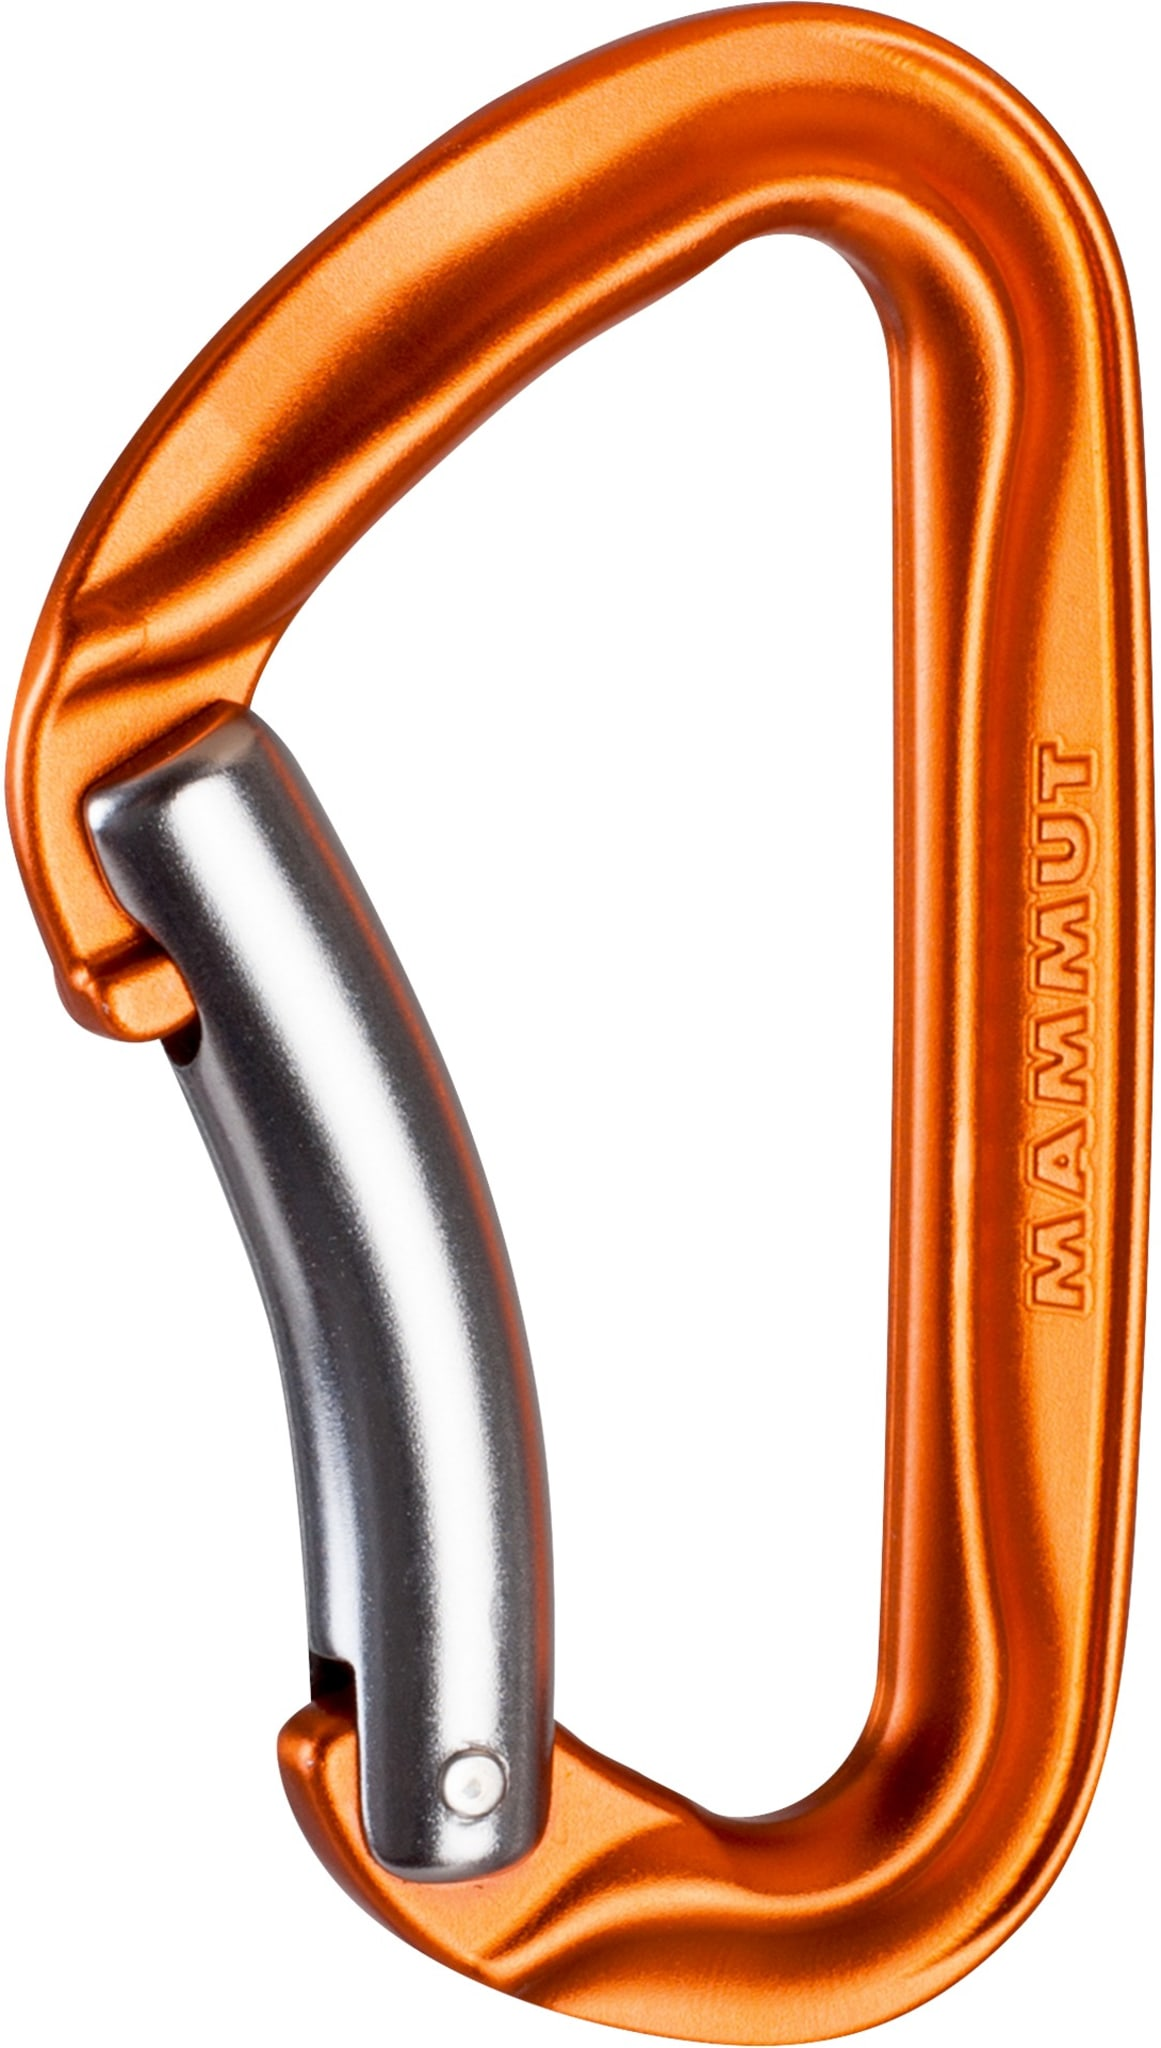 Karabiner med key lock for sportsklatring